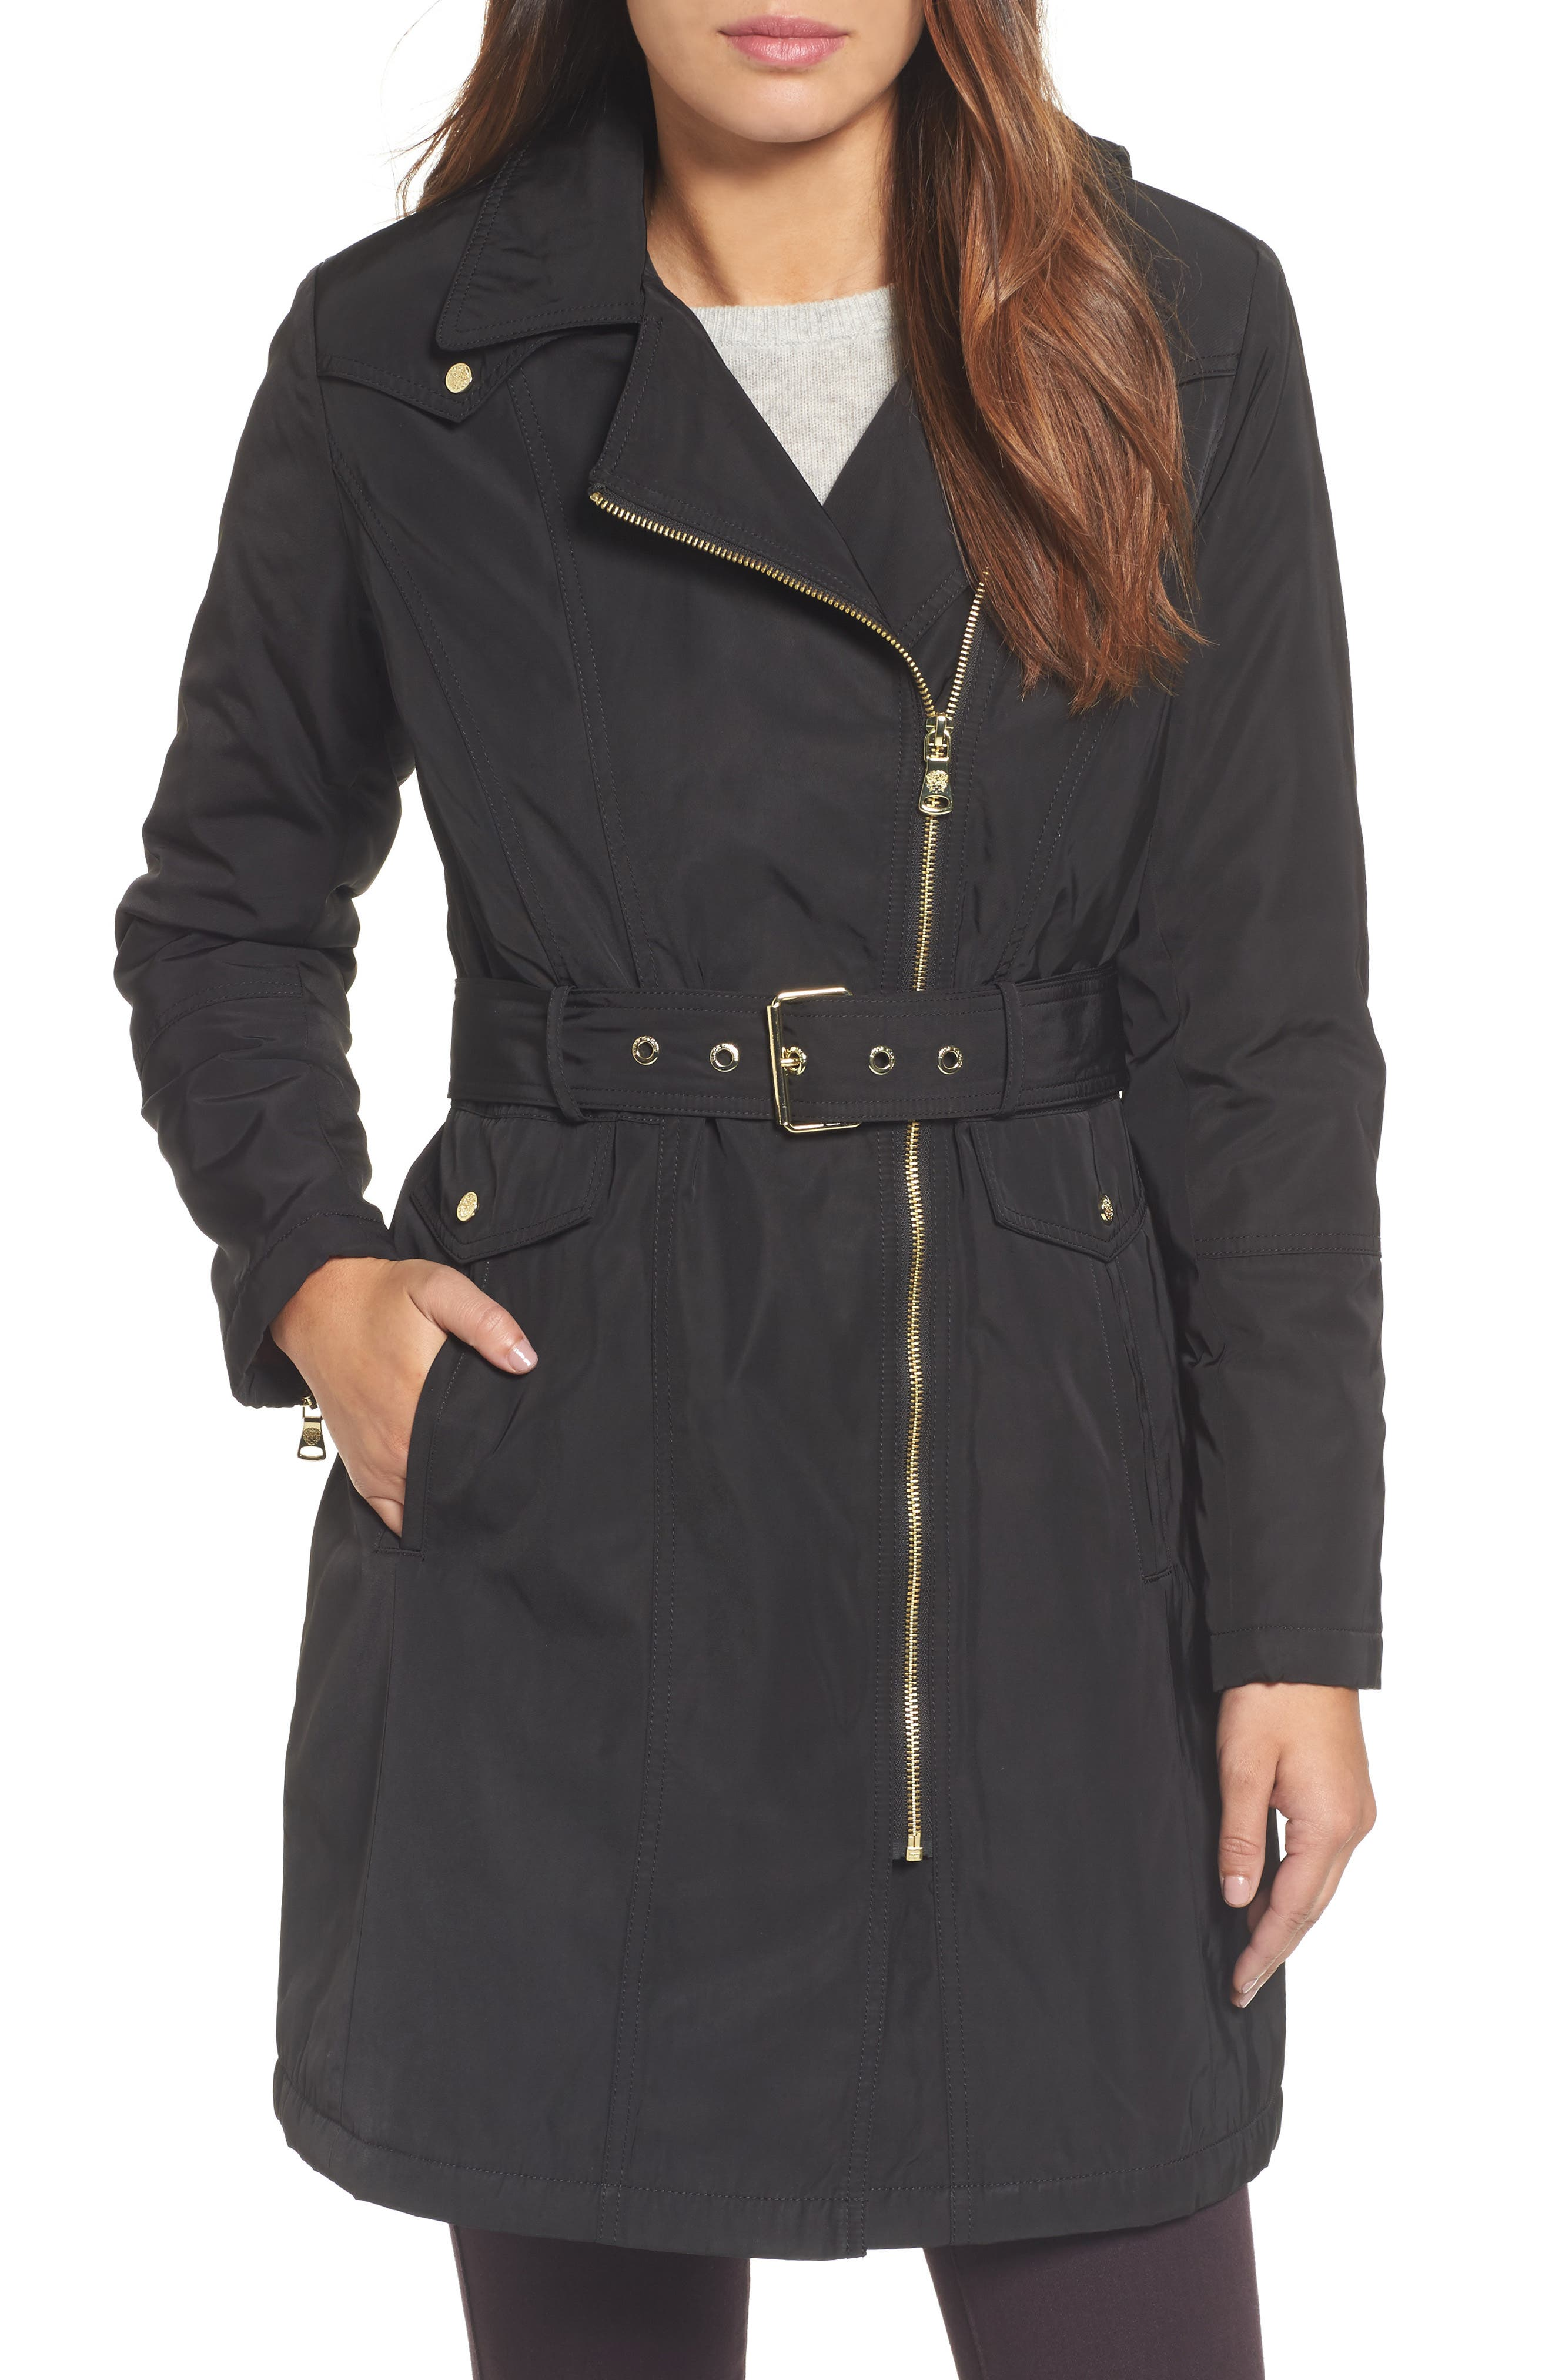 Alternate Image 1 Selected - Vince Camuto Belted Raincoat